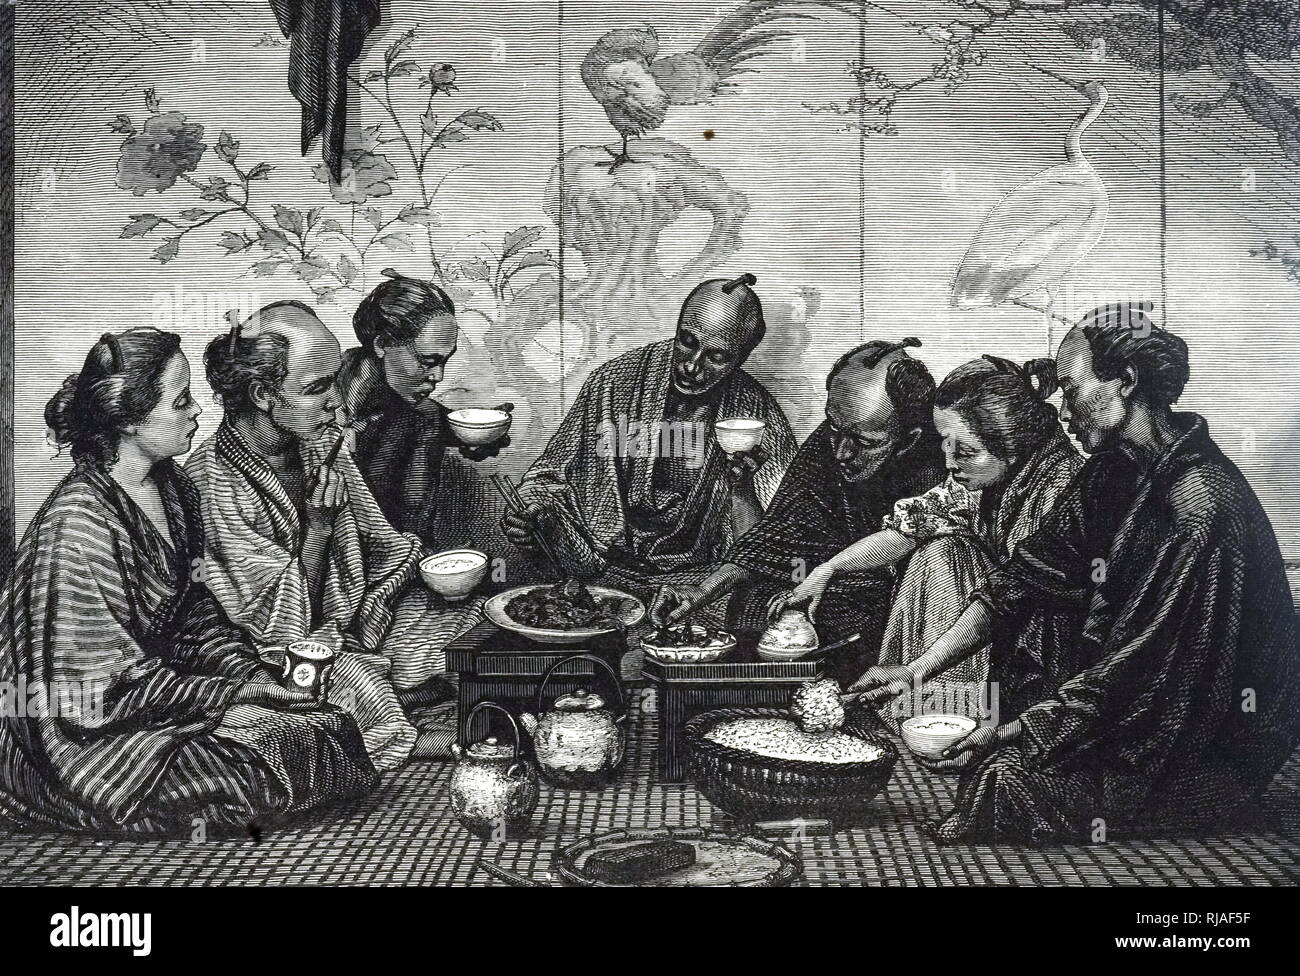 An engraving depicting a Japanese family eating a meal. Dated 19th century - Stock Image